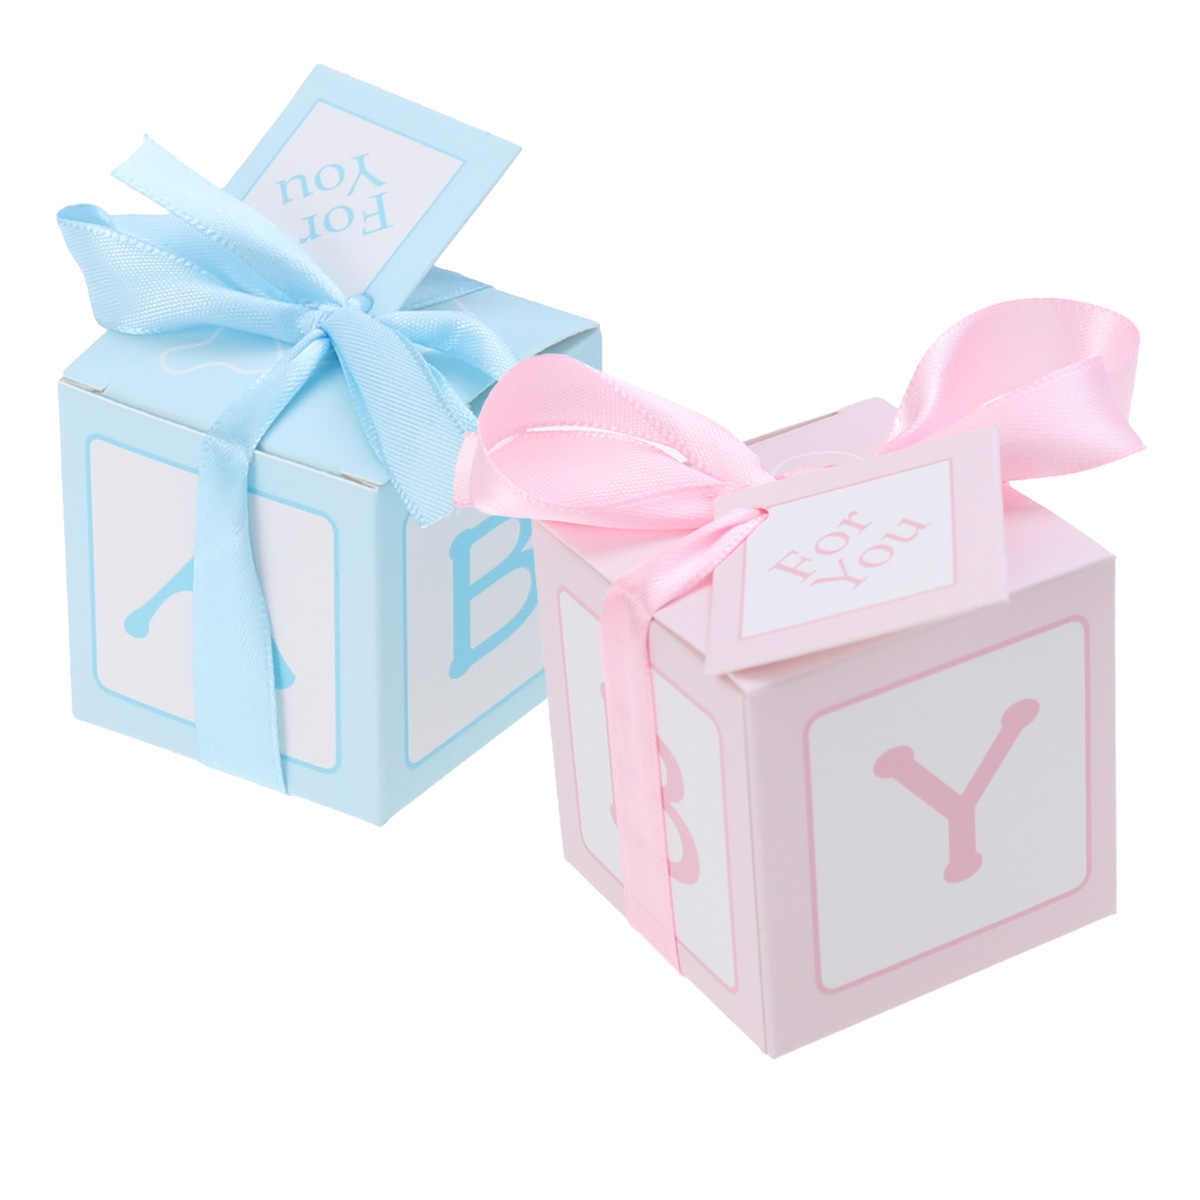 12pcs Creative Baby Shower Stitched Ribbon Wedding Printed Cards Treat Boxes Candy Boxes for Baby Shower Party Favors